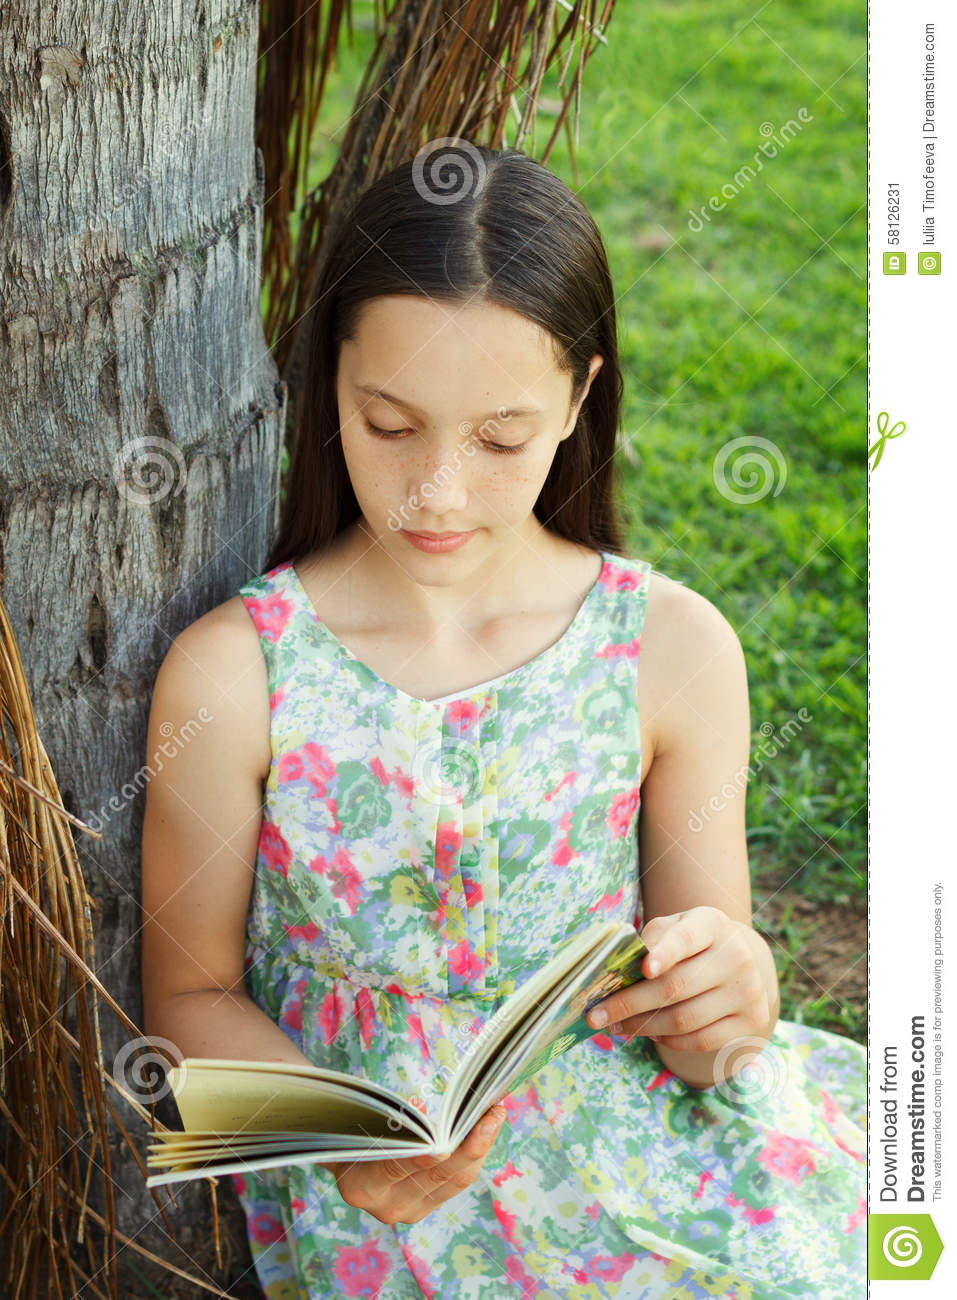 Cute Teen Girl Reading Book Sitting On Green Grass Stock